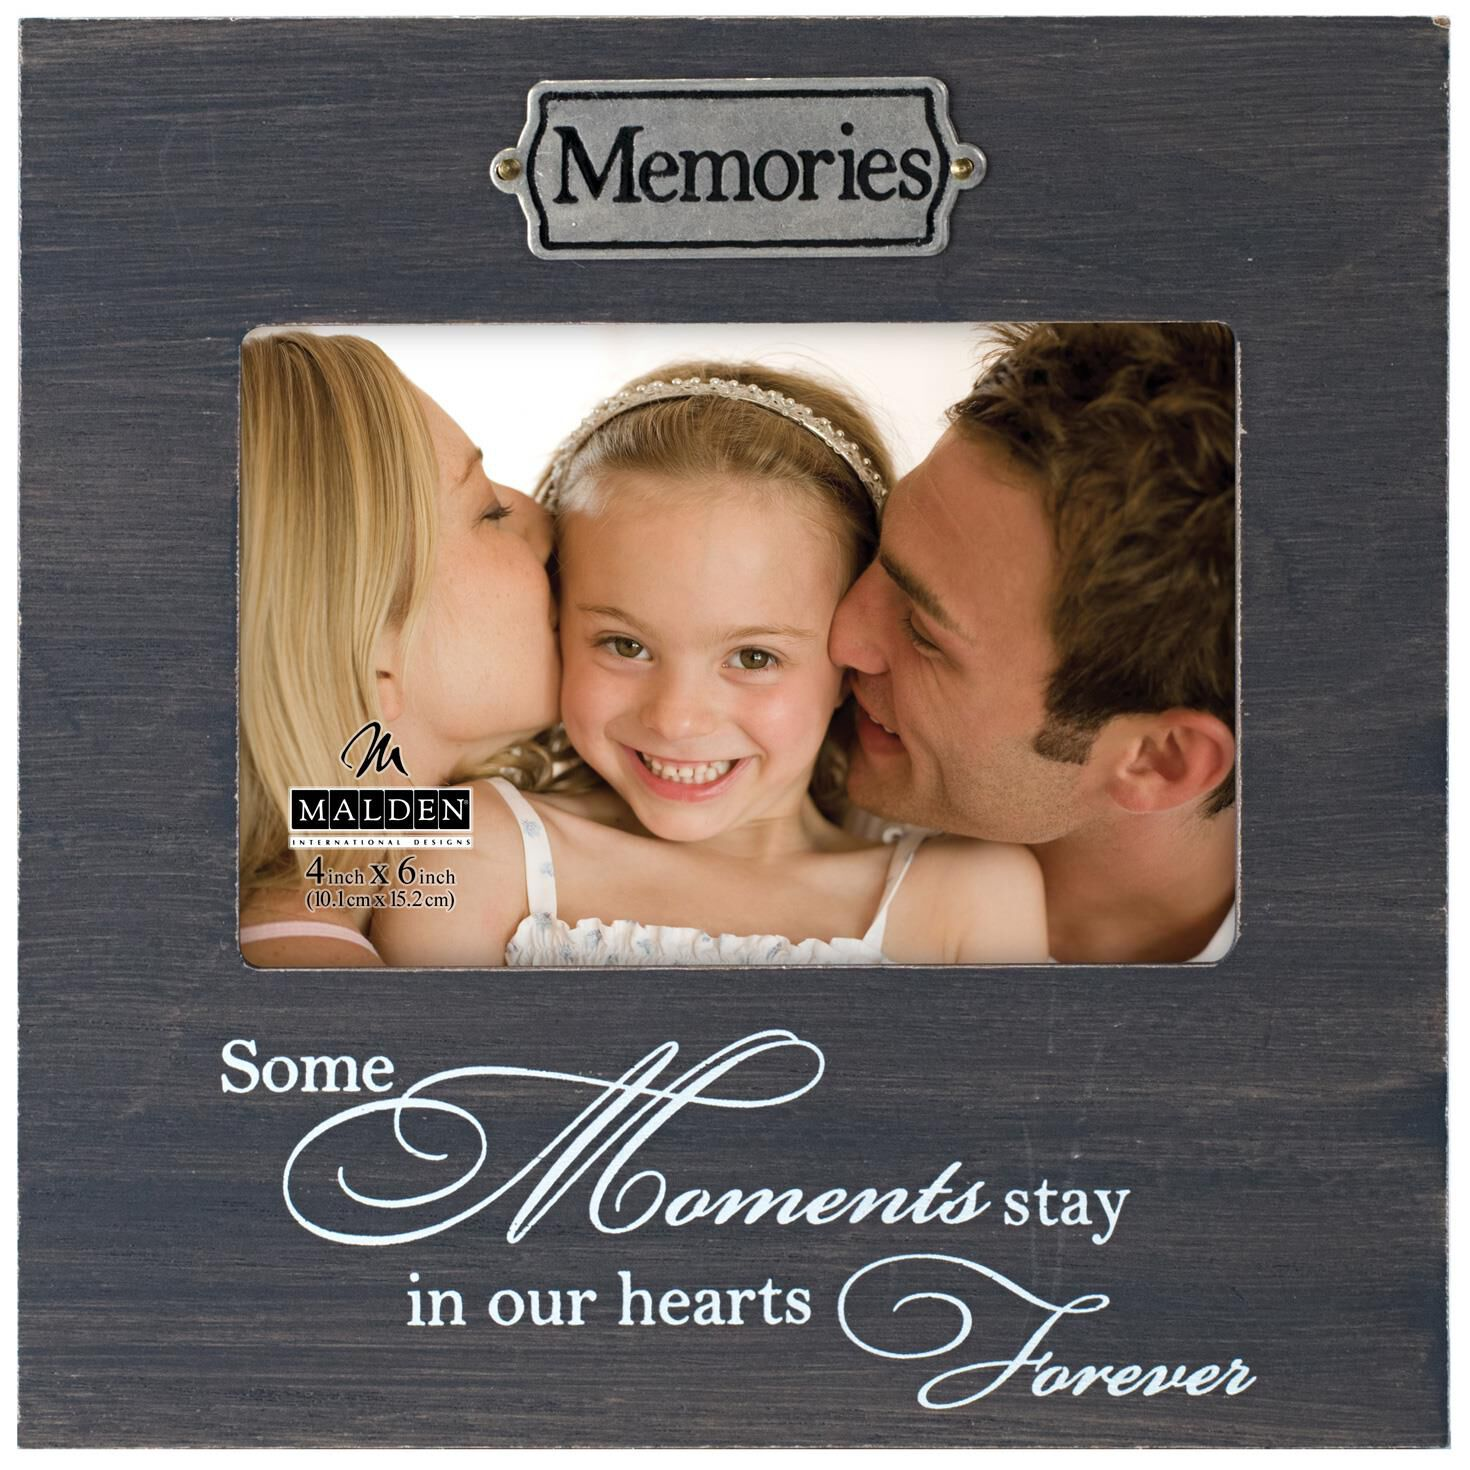 Malden Memories Weathered Wood Photo Frame, 4x6 - Picture Frames ...